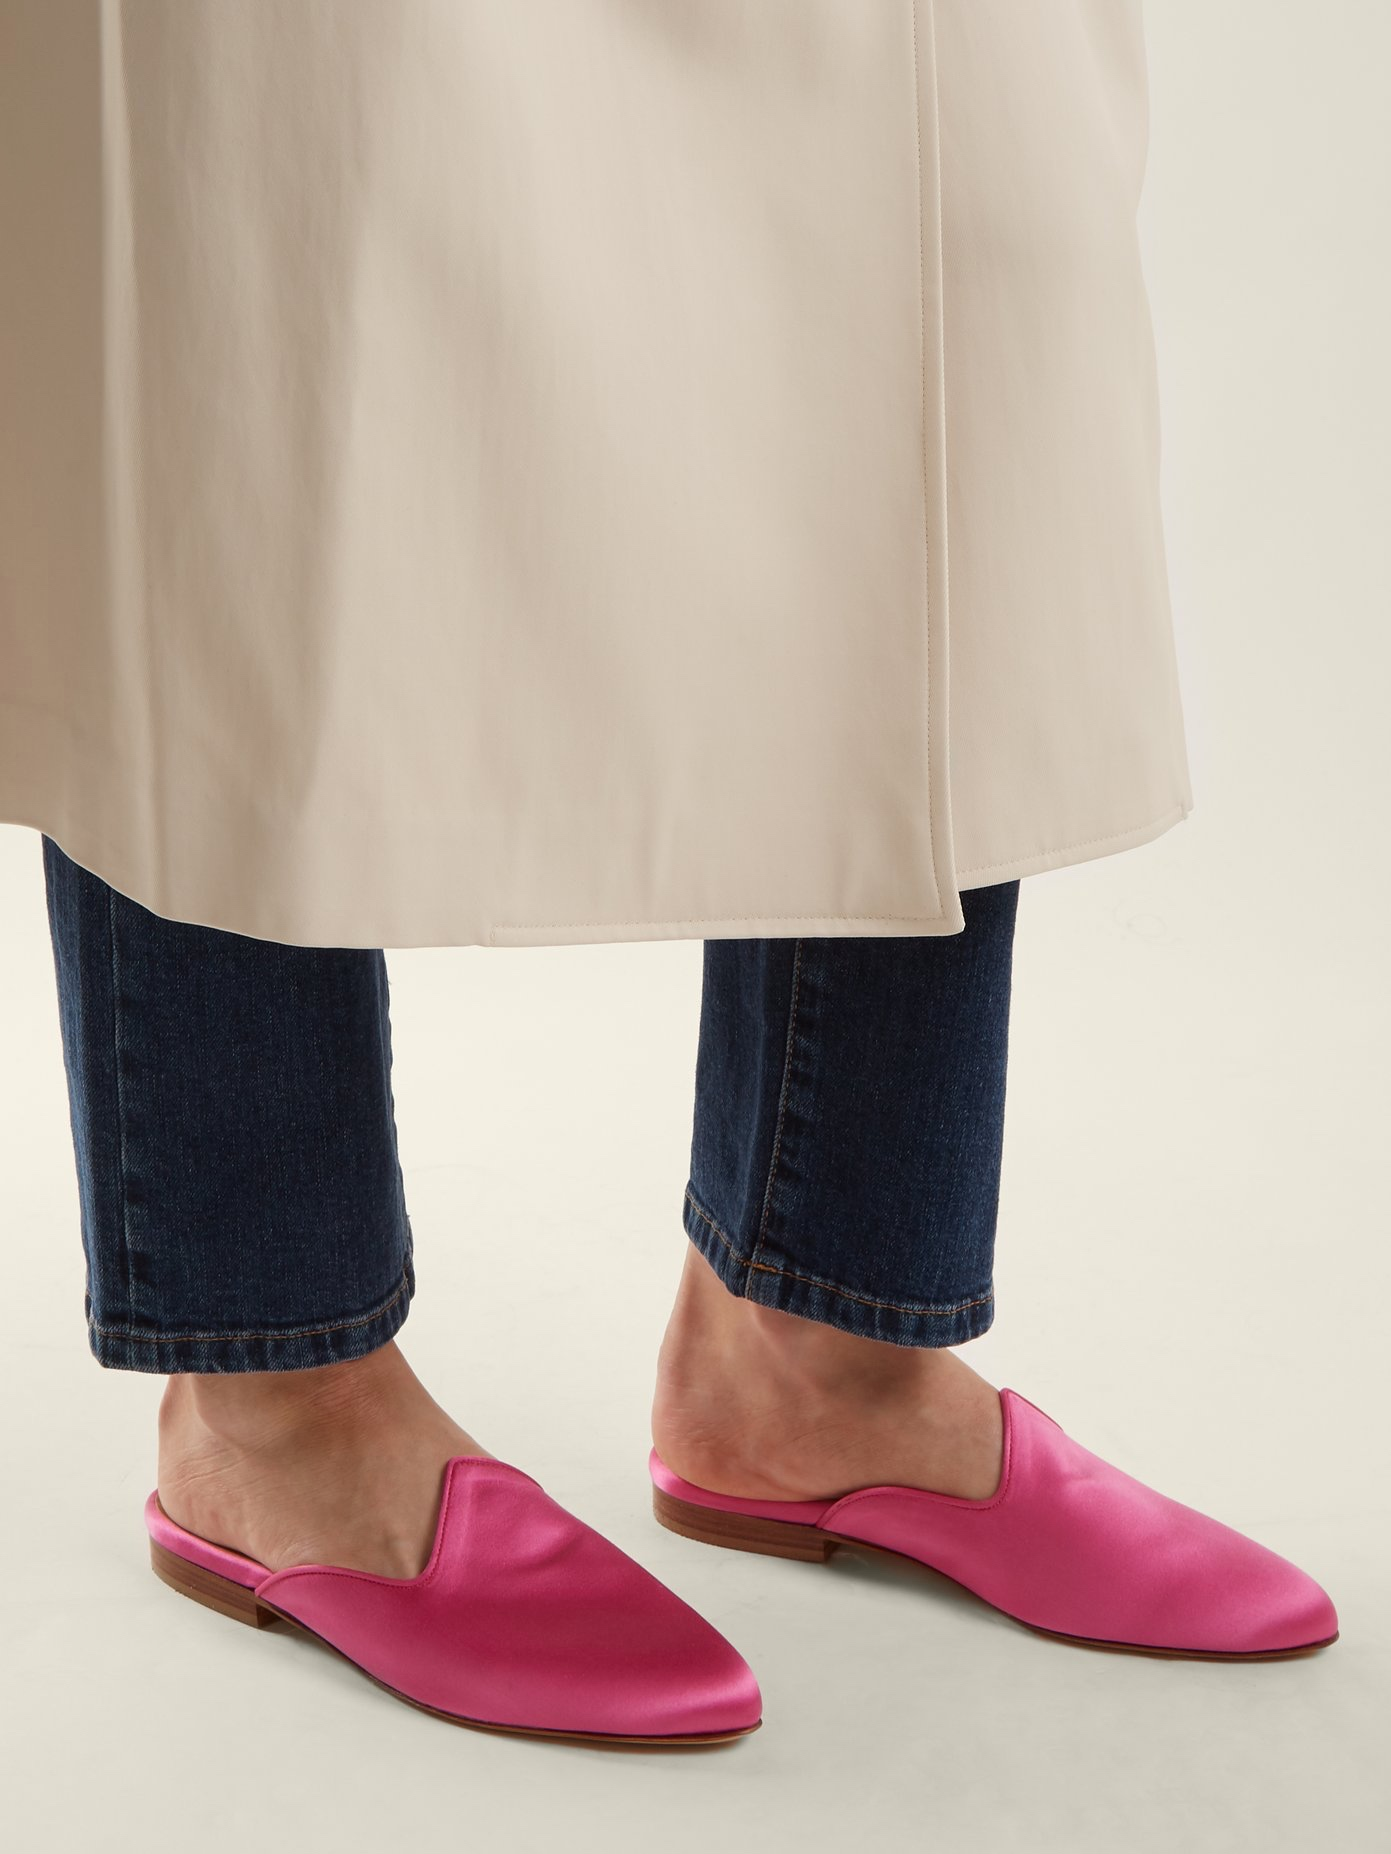 le monde beryl pink satin slipper slides